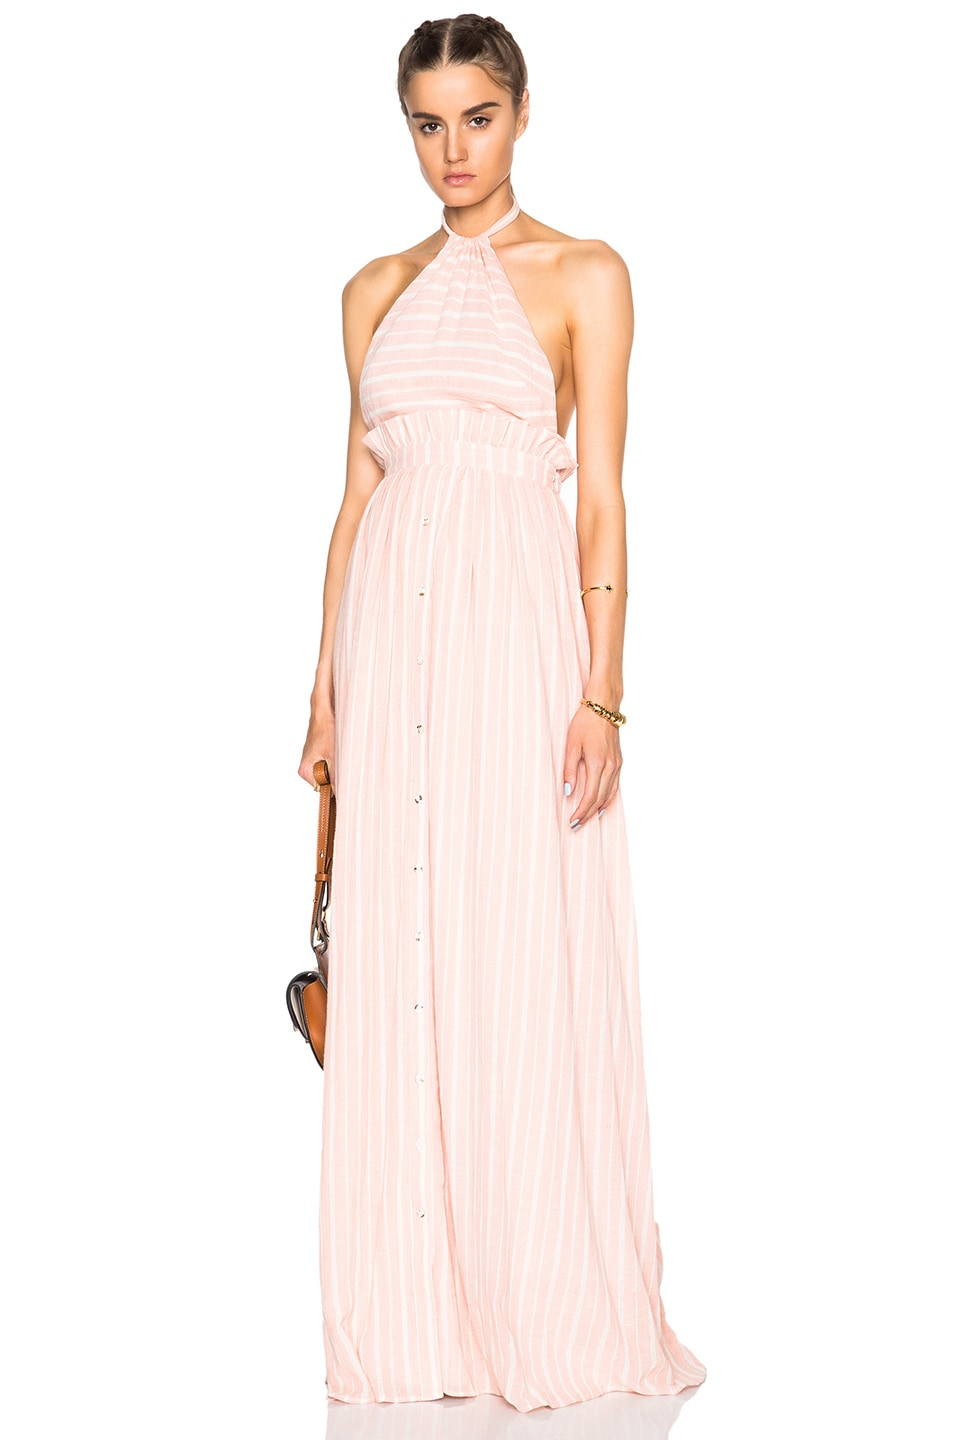 Image 1 Of Mara Hoffman Halter Dress In Pink White Stripe